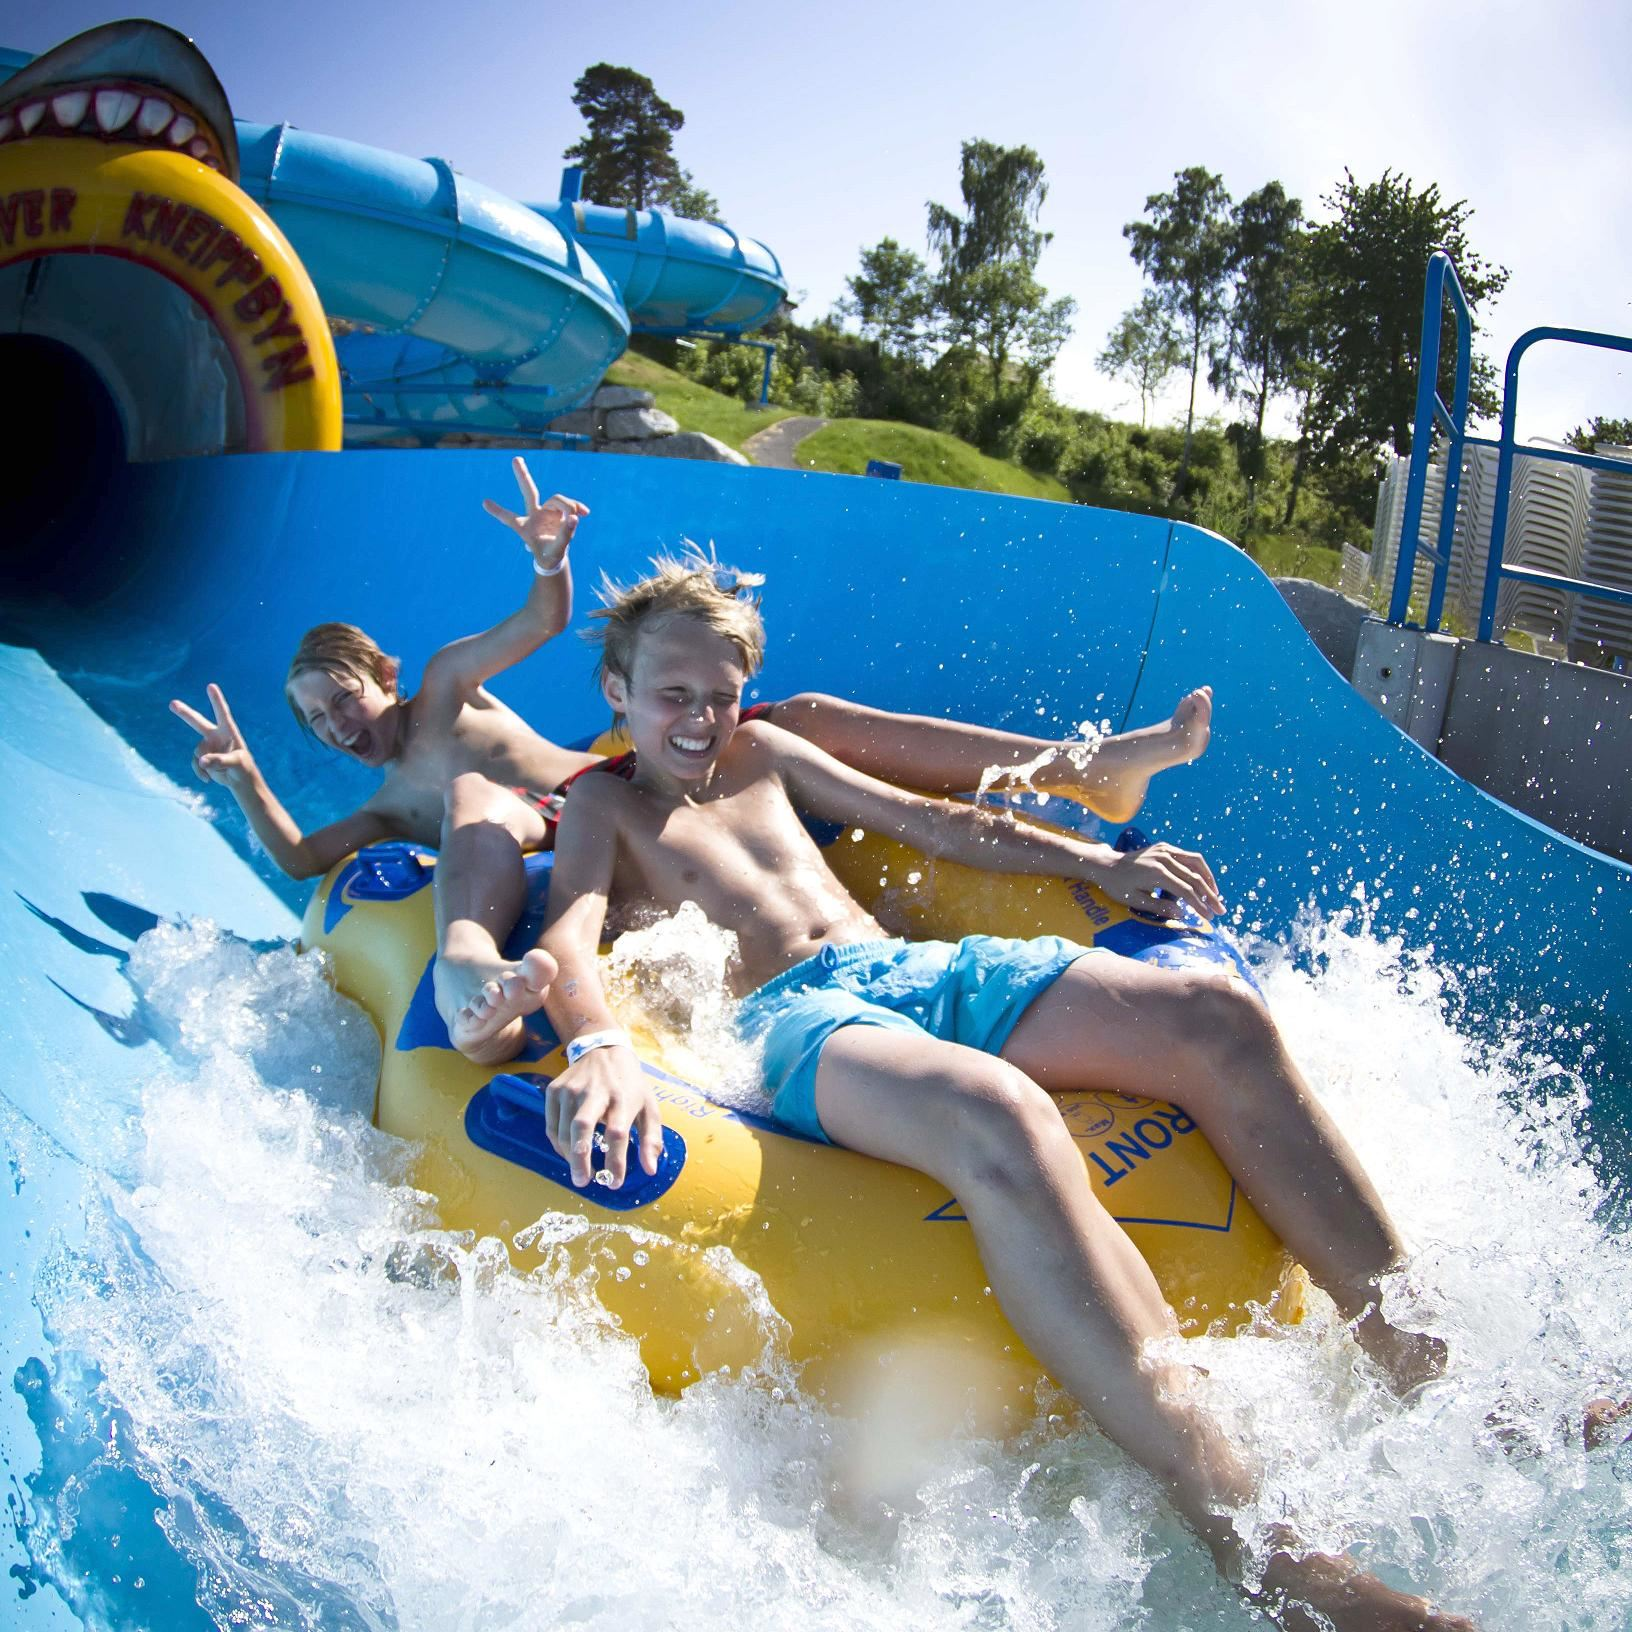 Kneippbyn's Summer & Waterland